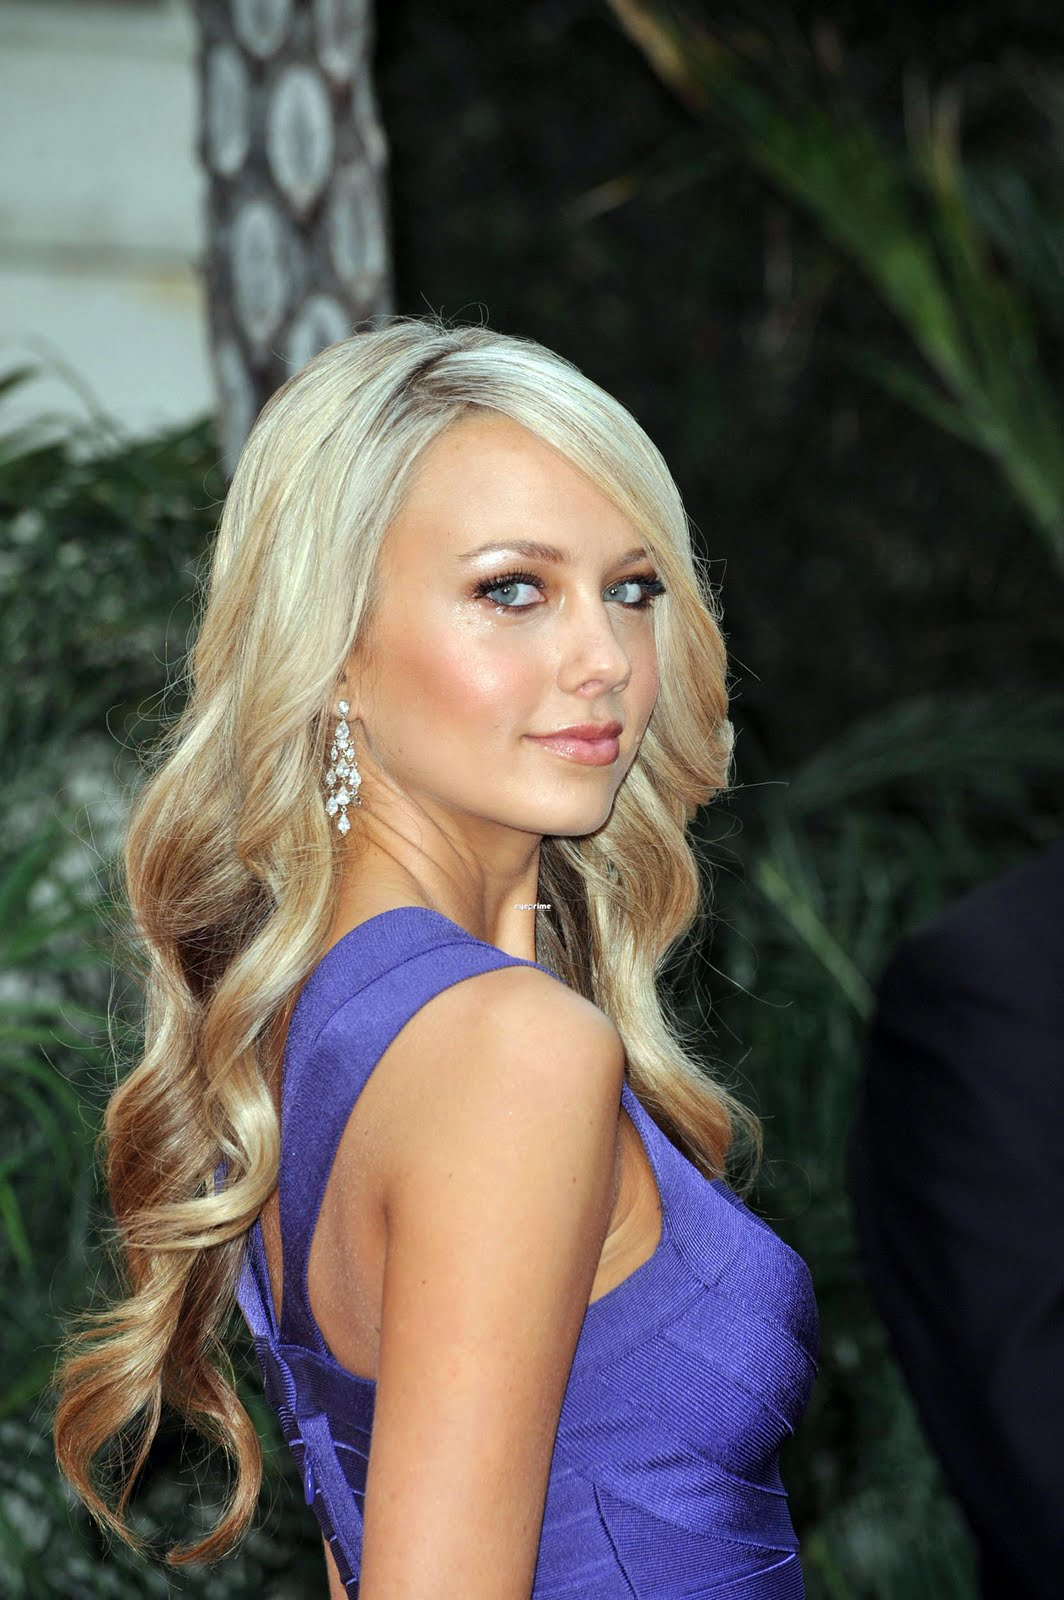 ordway women Melissa ordway was born on march 31, 1983 in atlanta, georgia, usa as melissa pam ordway she is an actress, known for 17 again women i would go gay for.